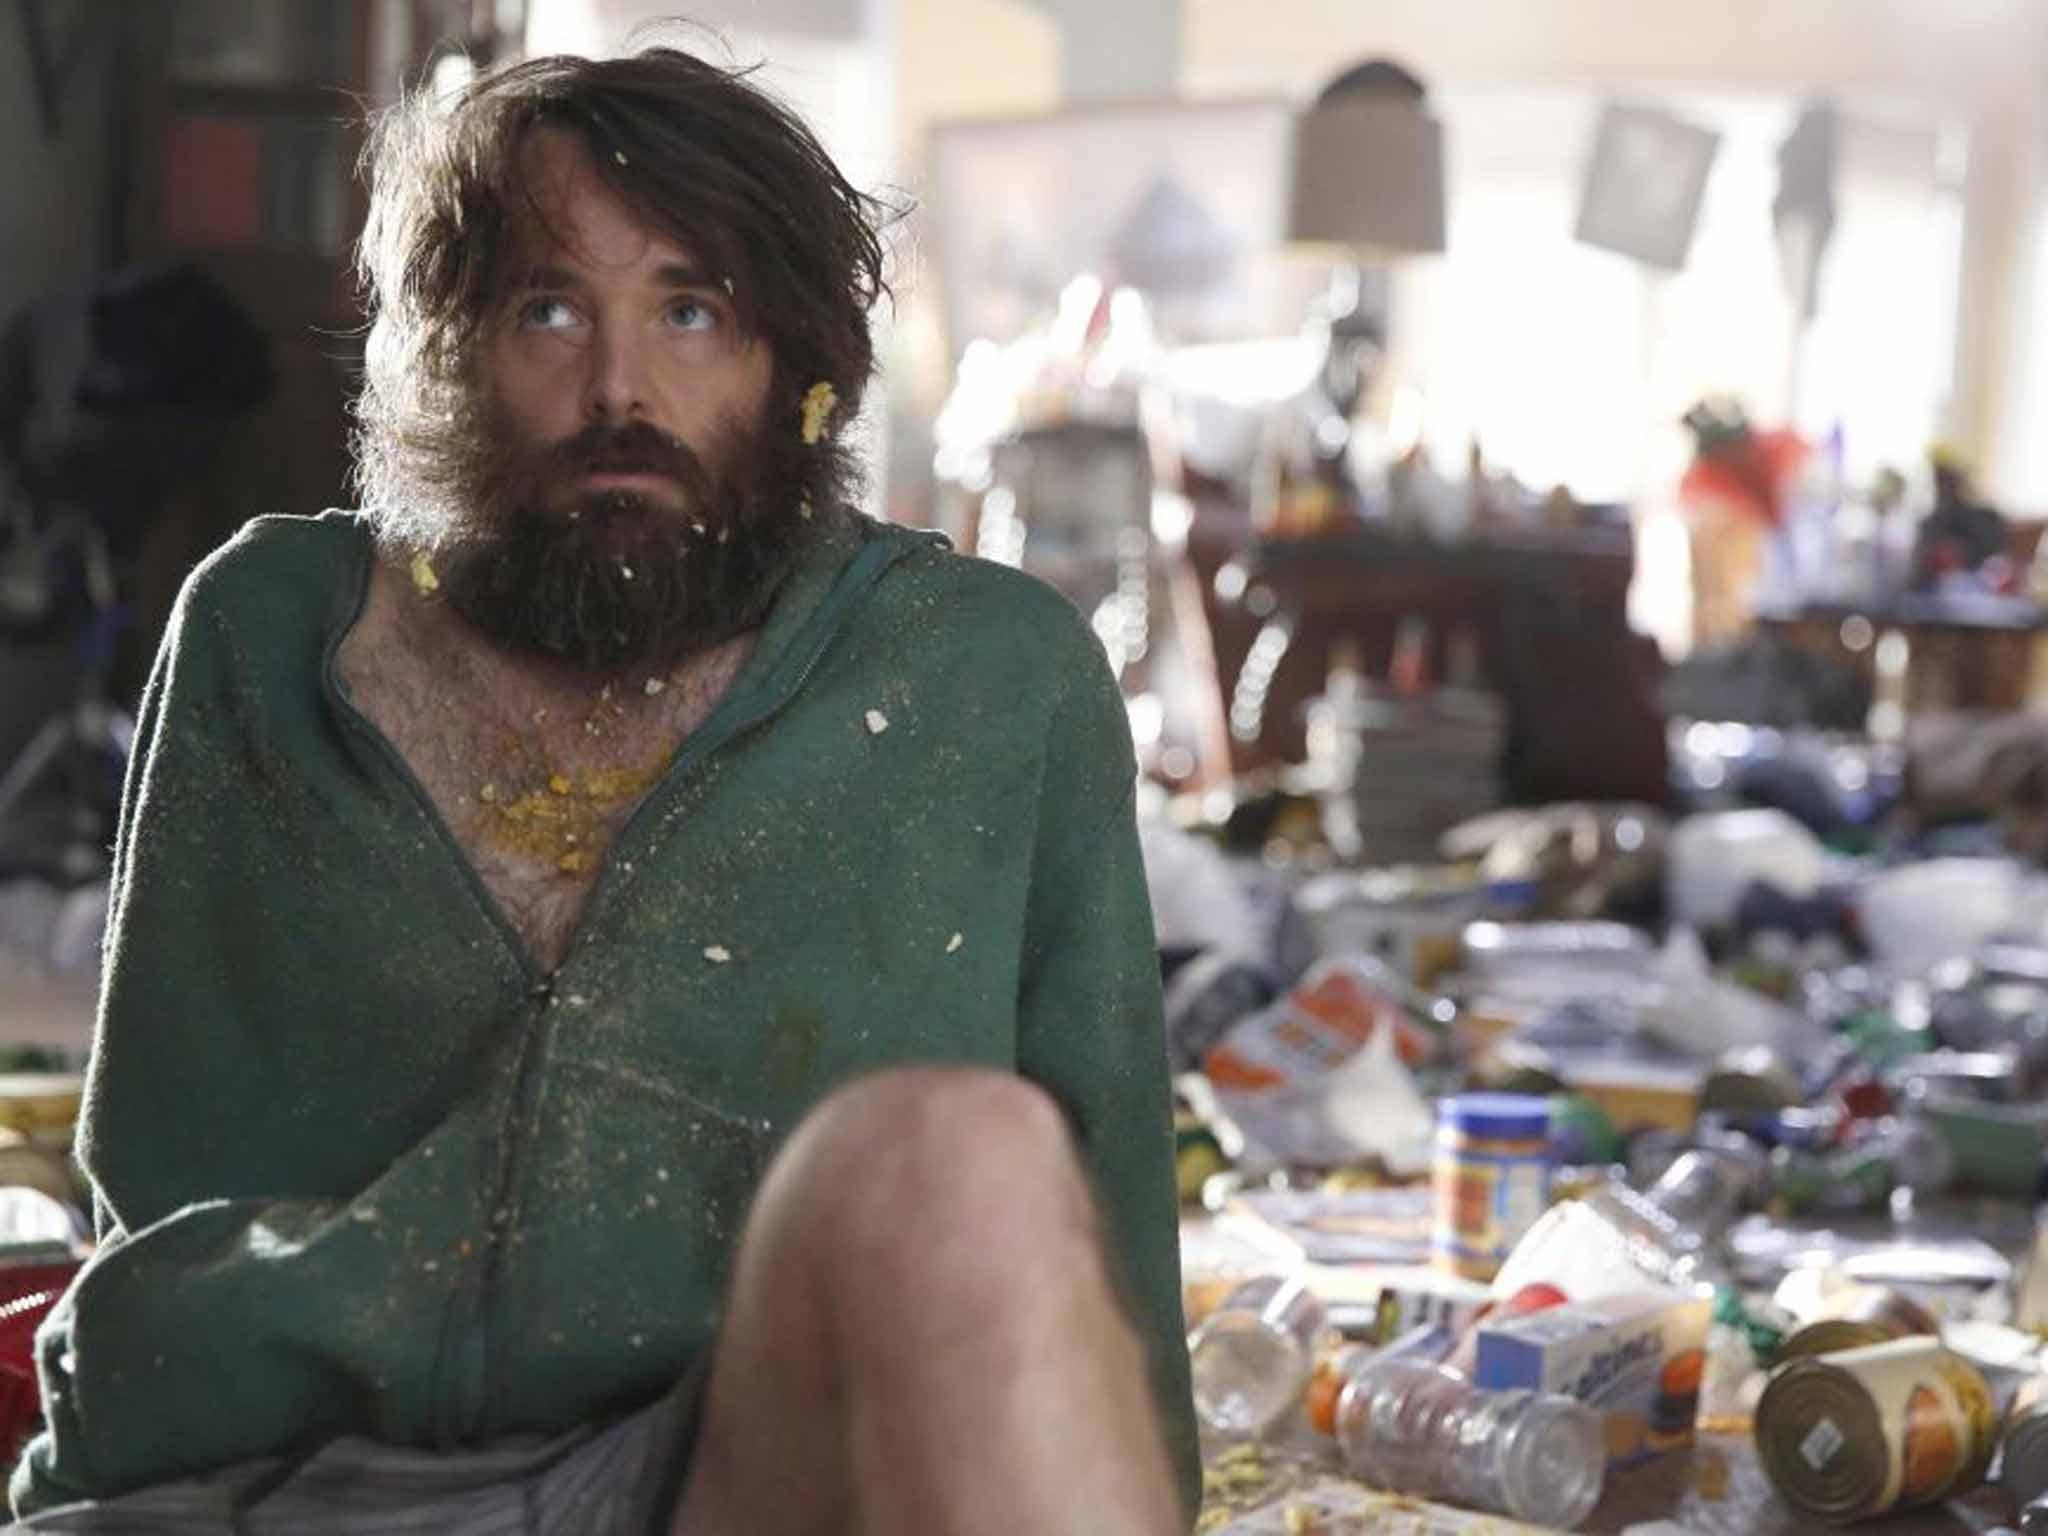 The Last Man On Earth The New Sitcom From The Inventive Pair